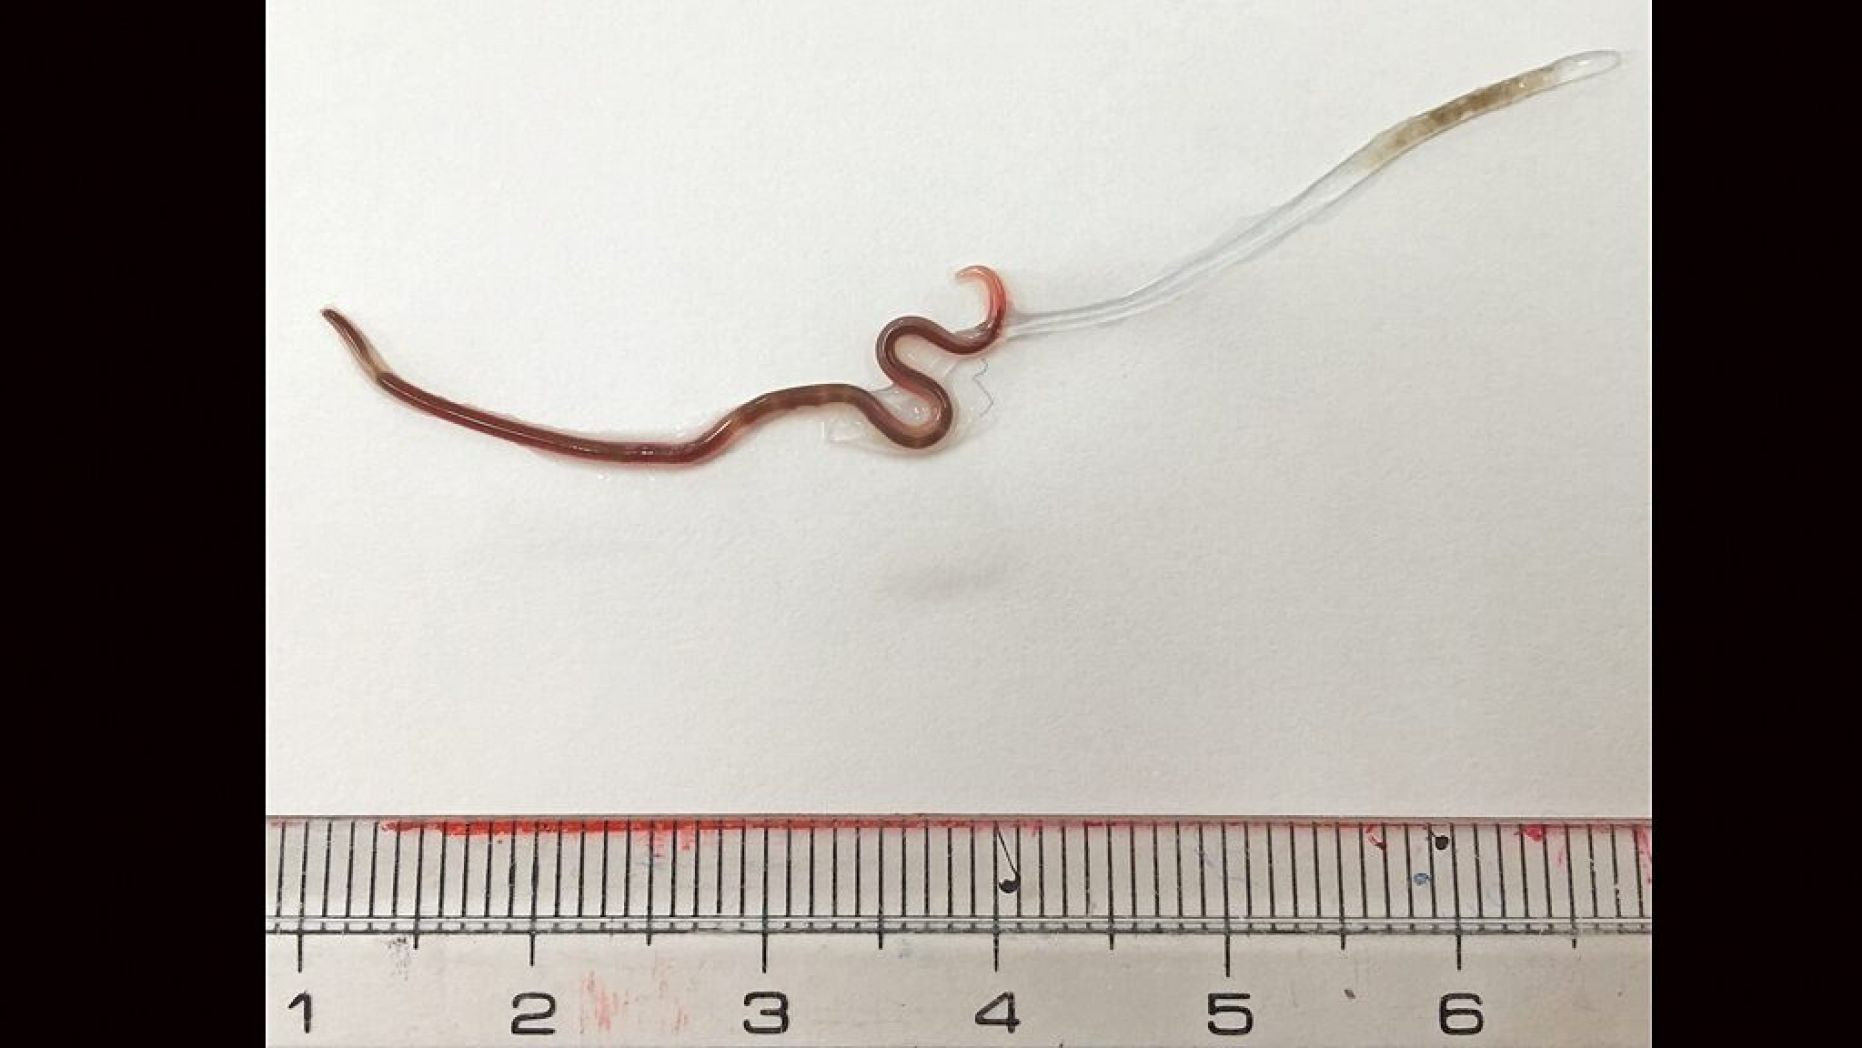 The worm tweezed out of the woman's tonsil was 38 millimeters (1.5 inches) long.